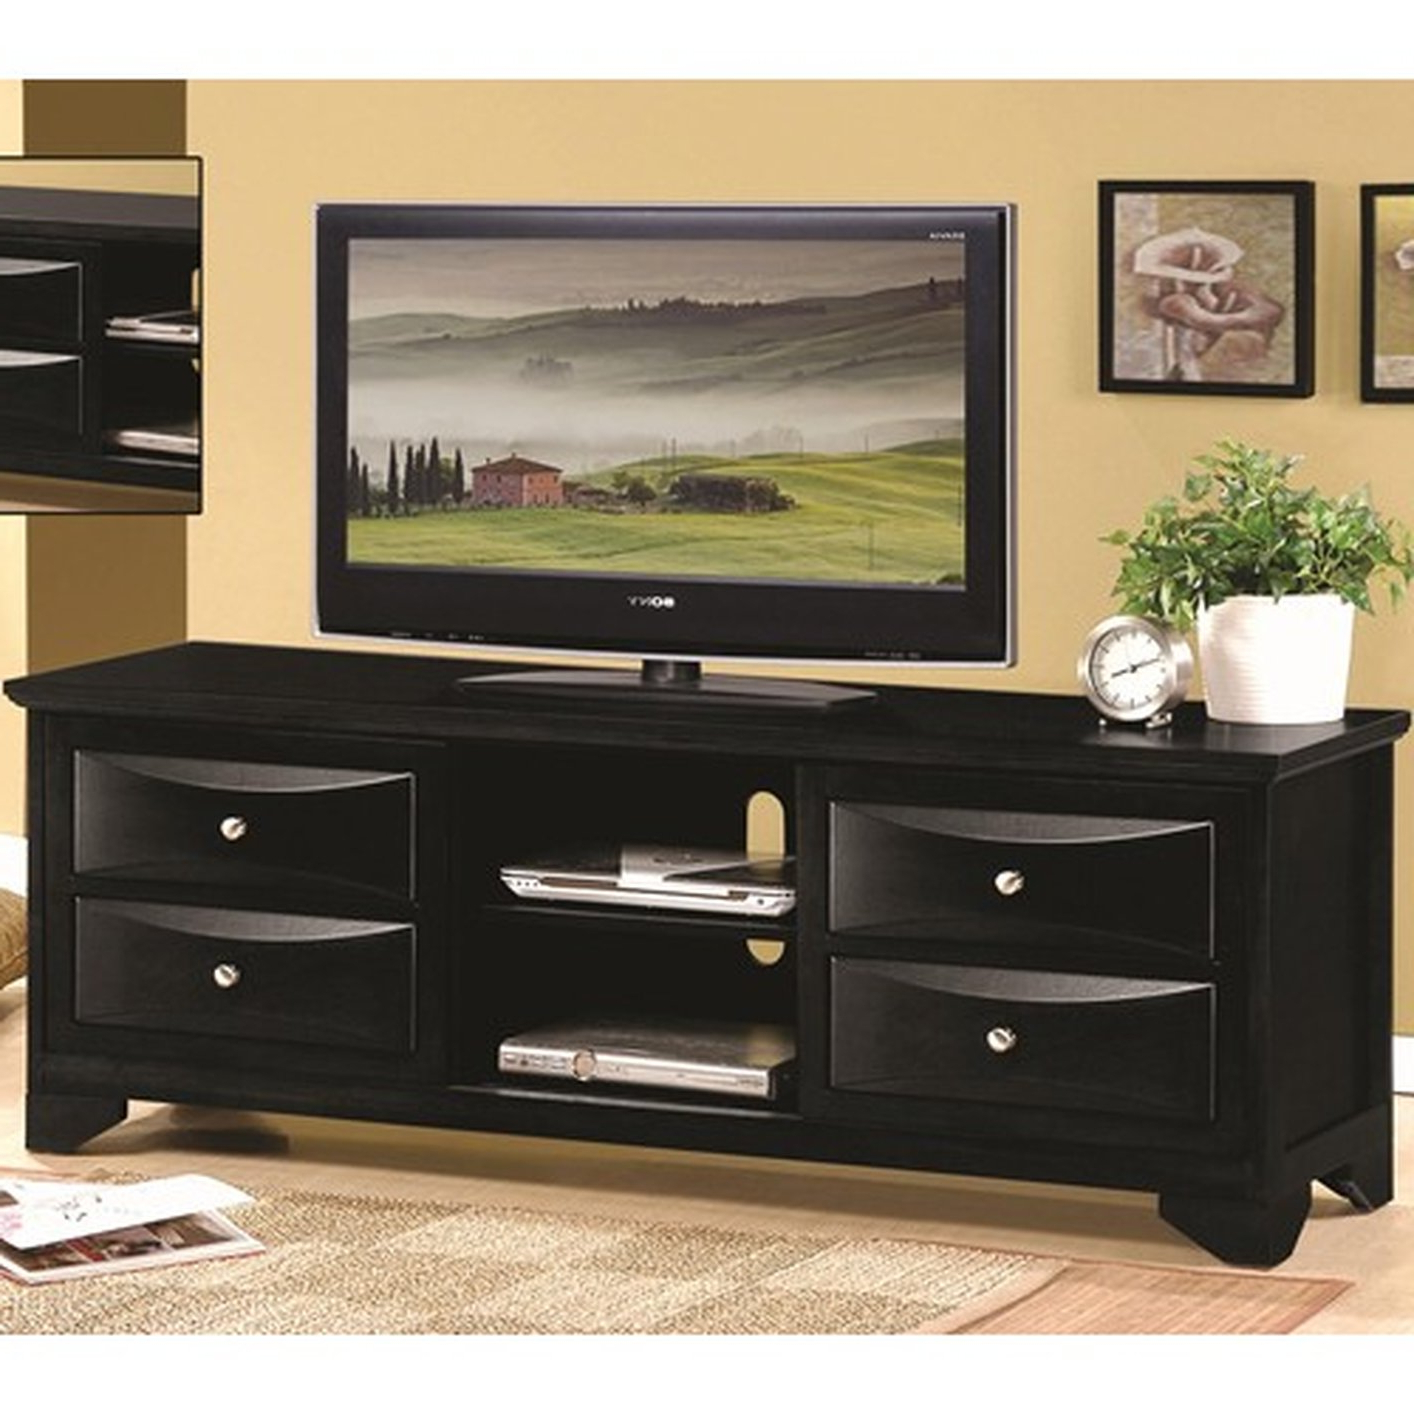 Black Wood Tv Stand – Steal A Sofa Furniture Outlet Los Angeles Ca Within Favorite Dark Wood Tv Stands (View 5 of 20)